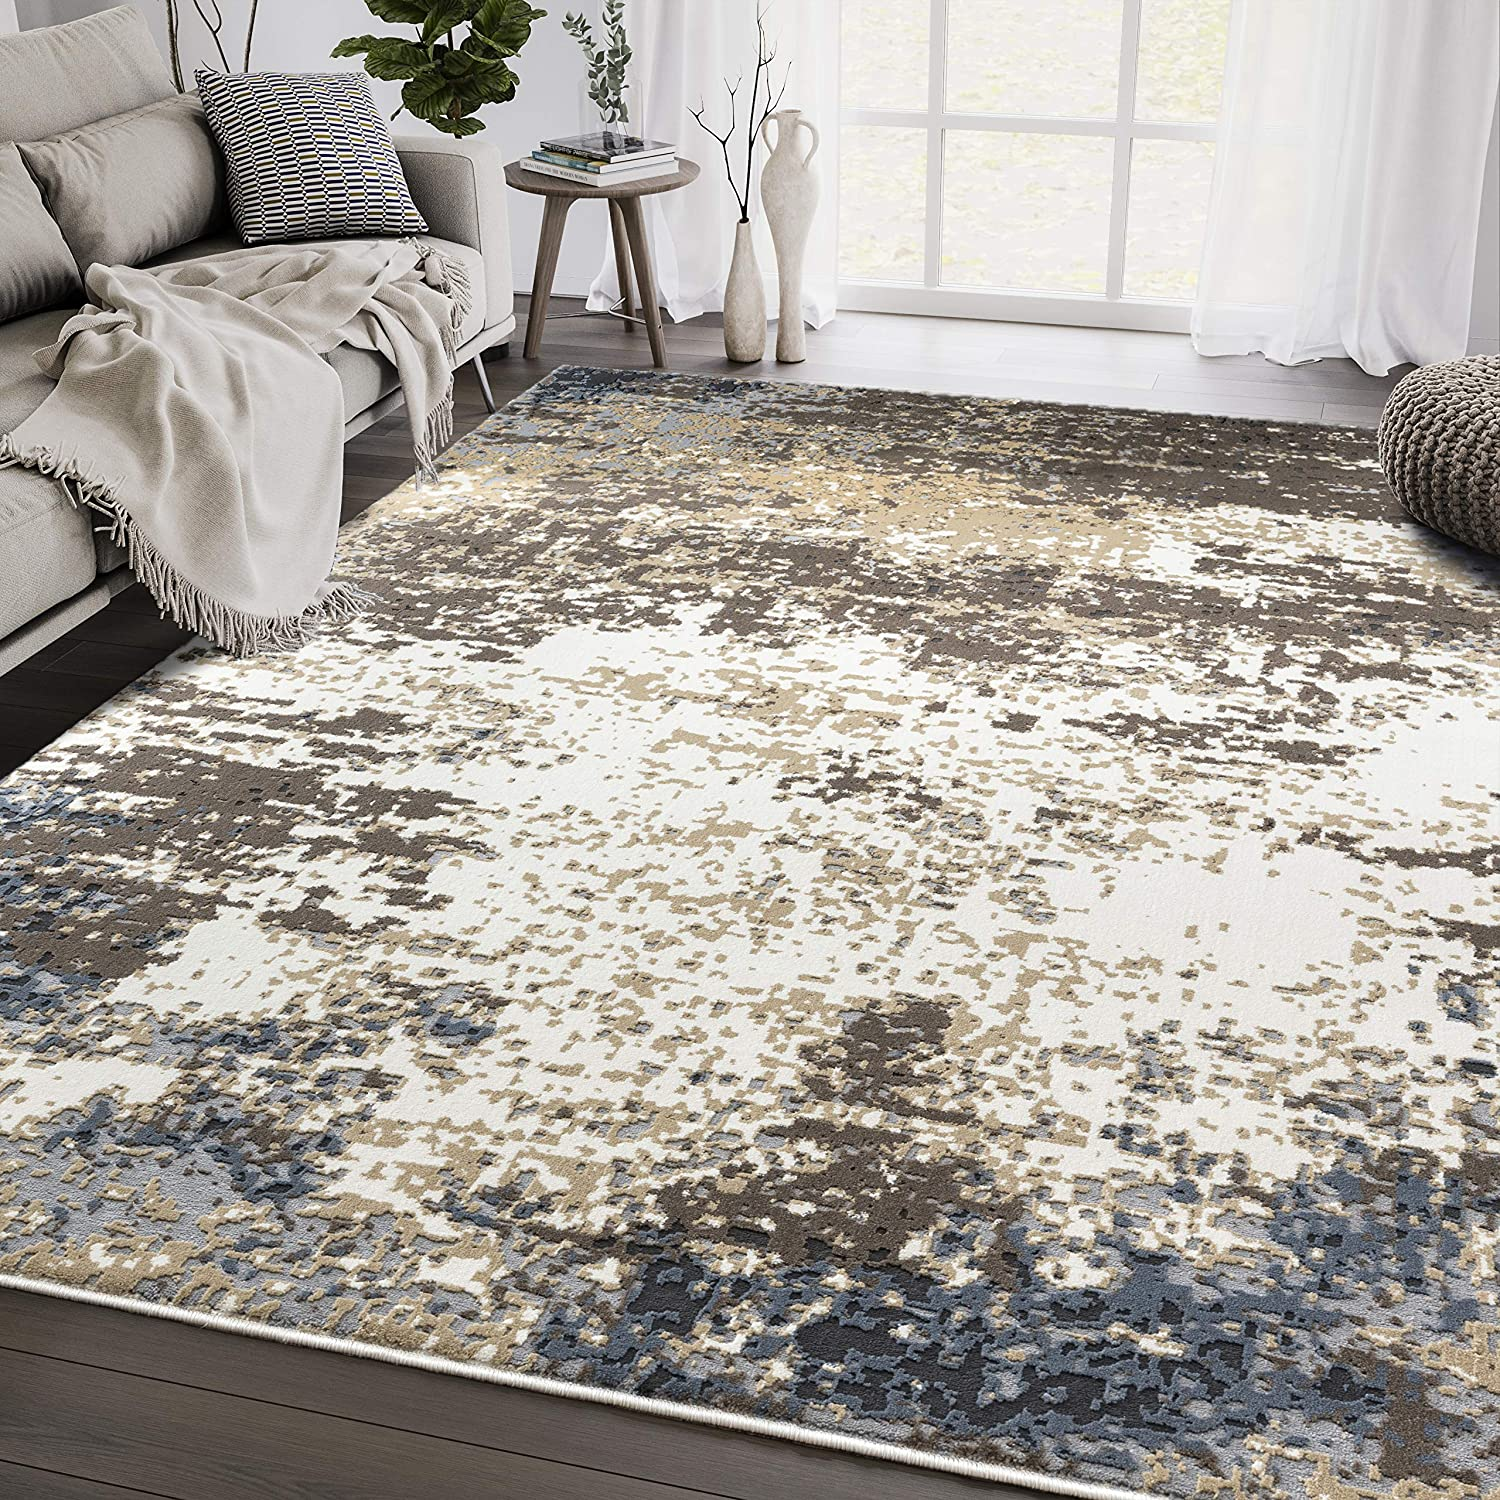 Distressed Turkish Area Rug Max 77% OFF Aspen Blue low-pricing Collection Brown Abstr